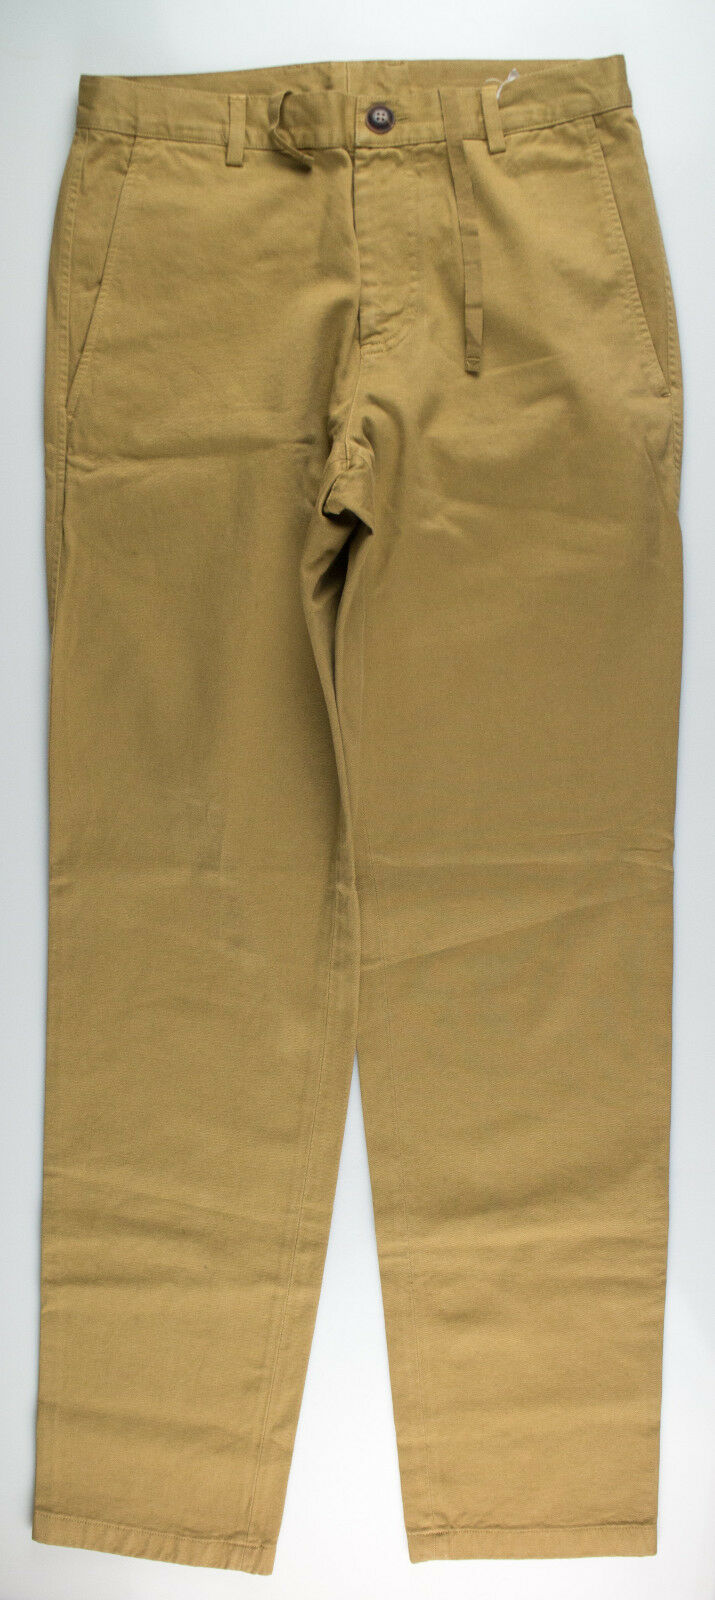 New. ADAM KIMMEL Brown Cotton Casual Pants Size XS